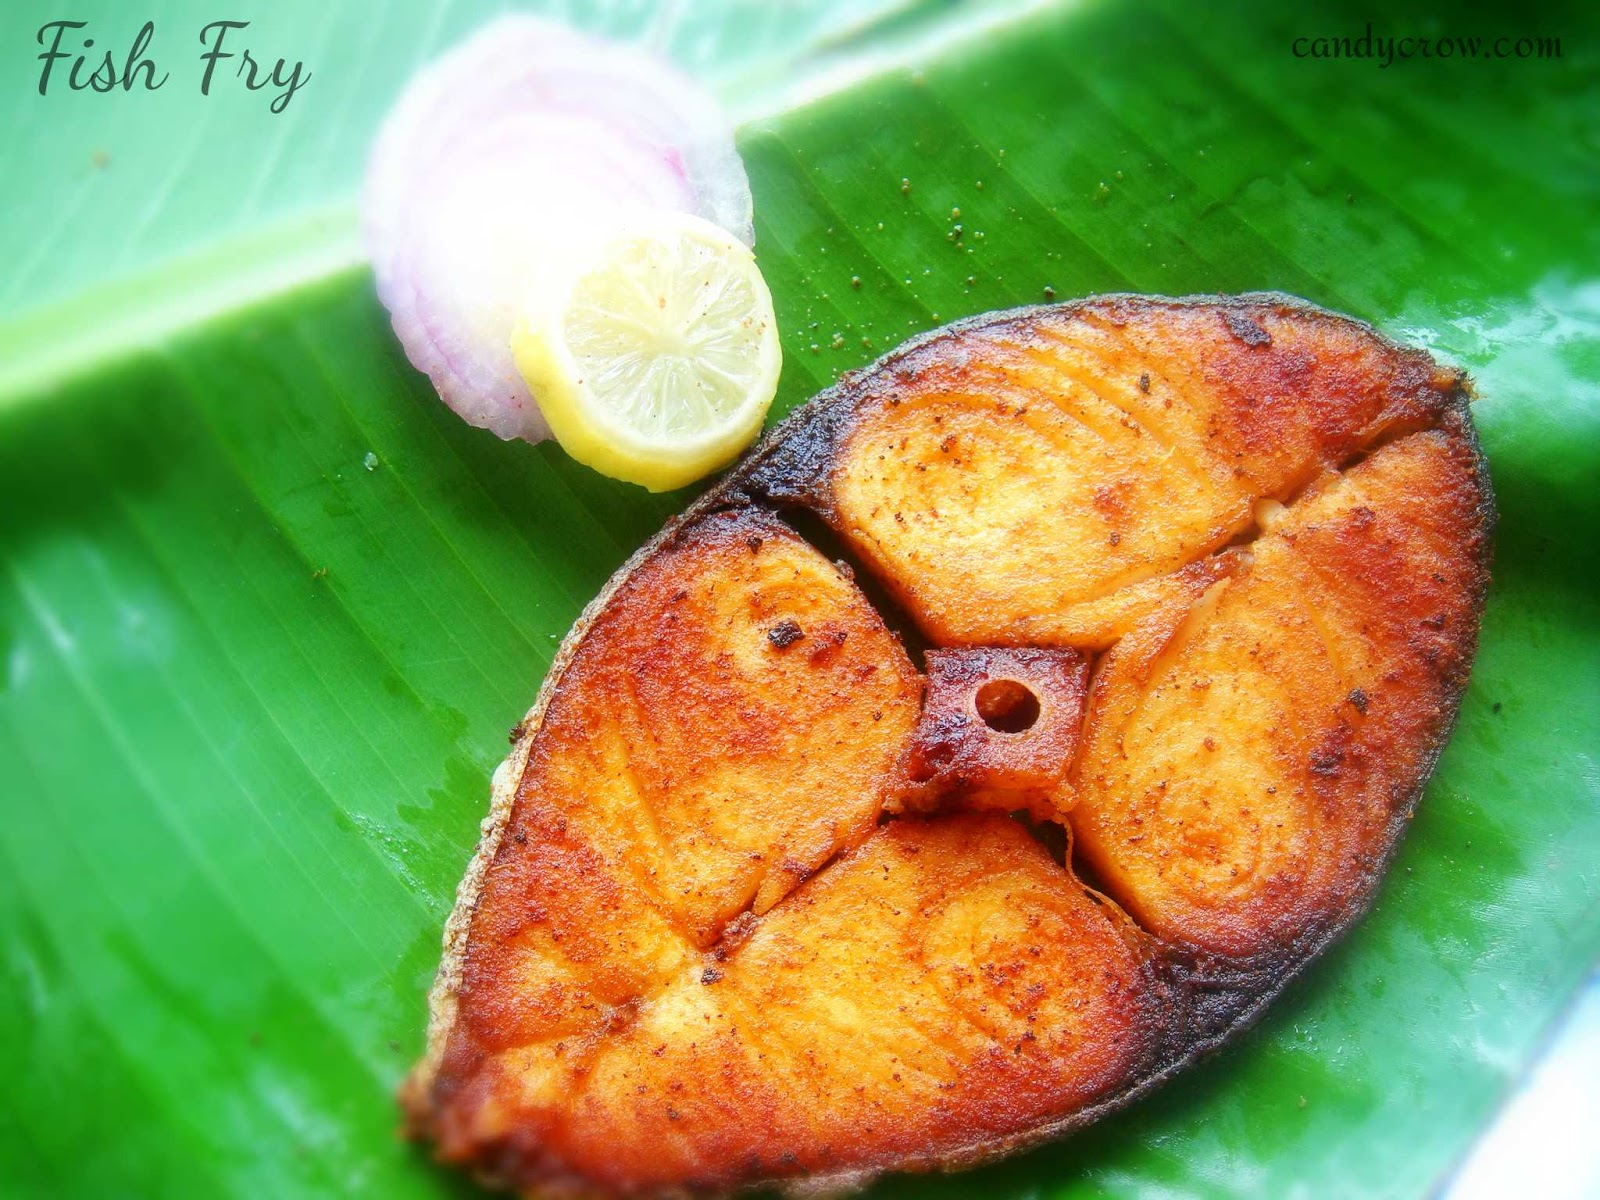 Fish fry south indian fish fry recipe candy crow top indian fish fry forumfinder Gallery